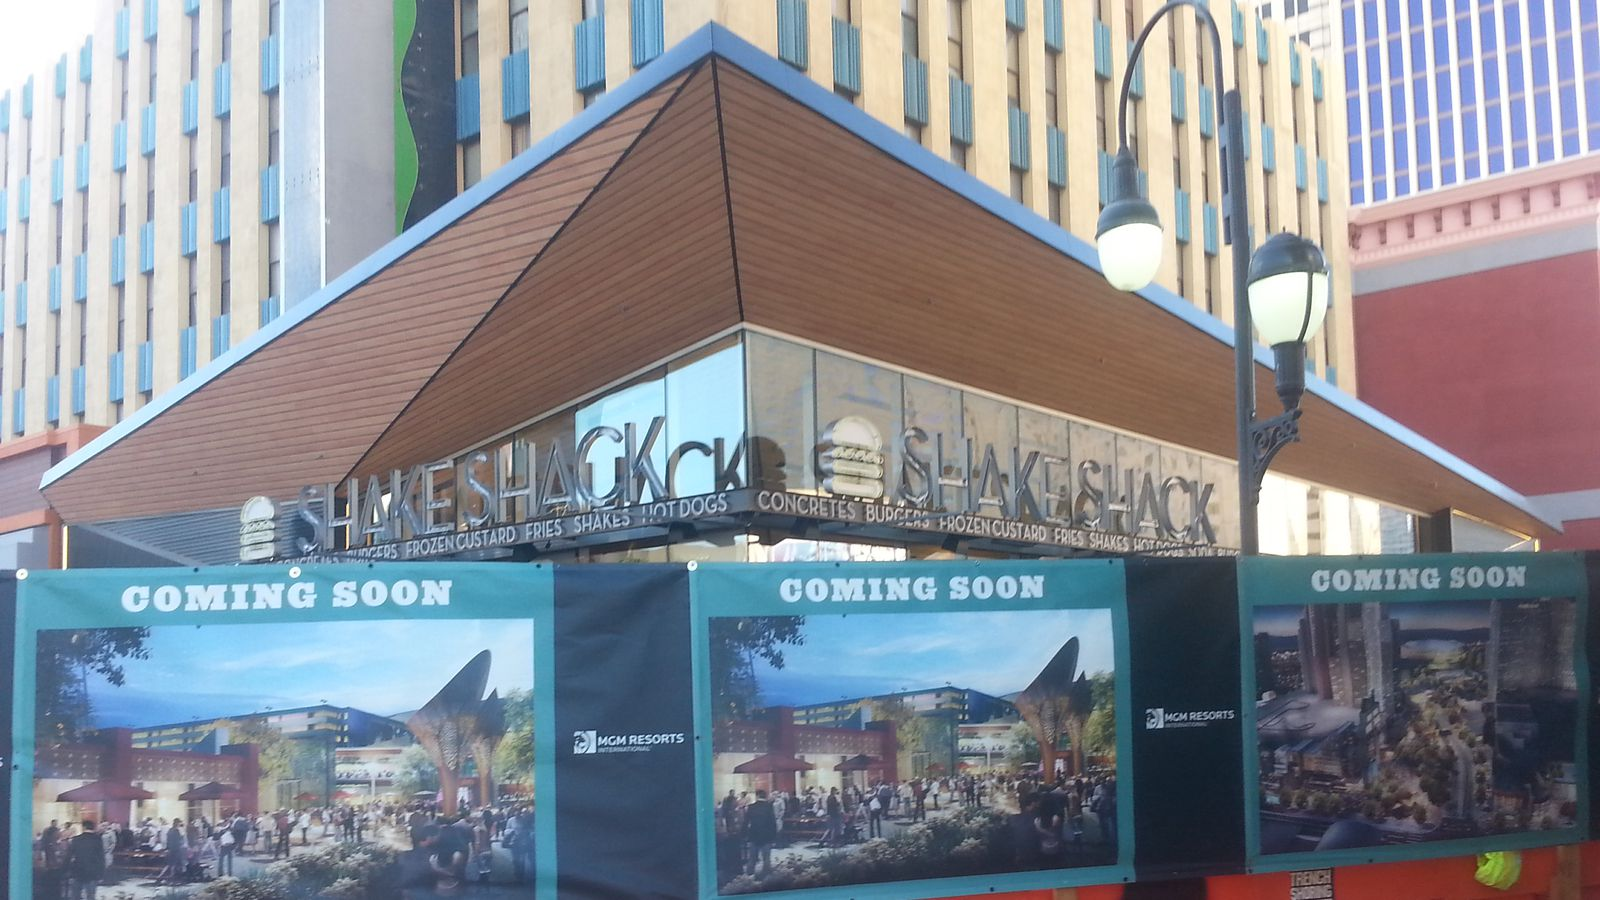 26 Things You Need To Know About Shake Shack Opening Dec